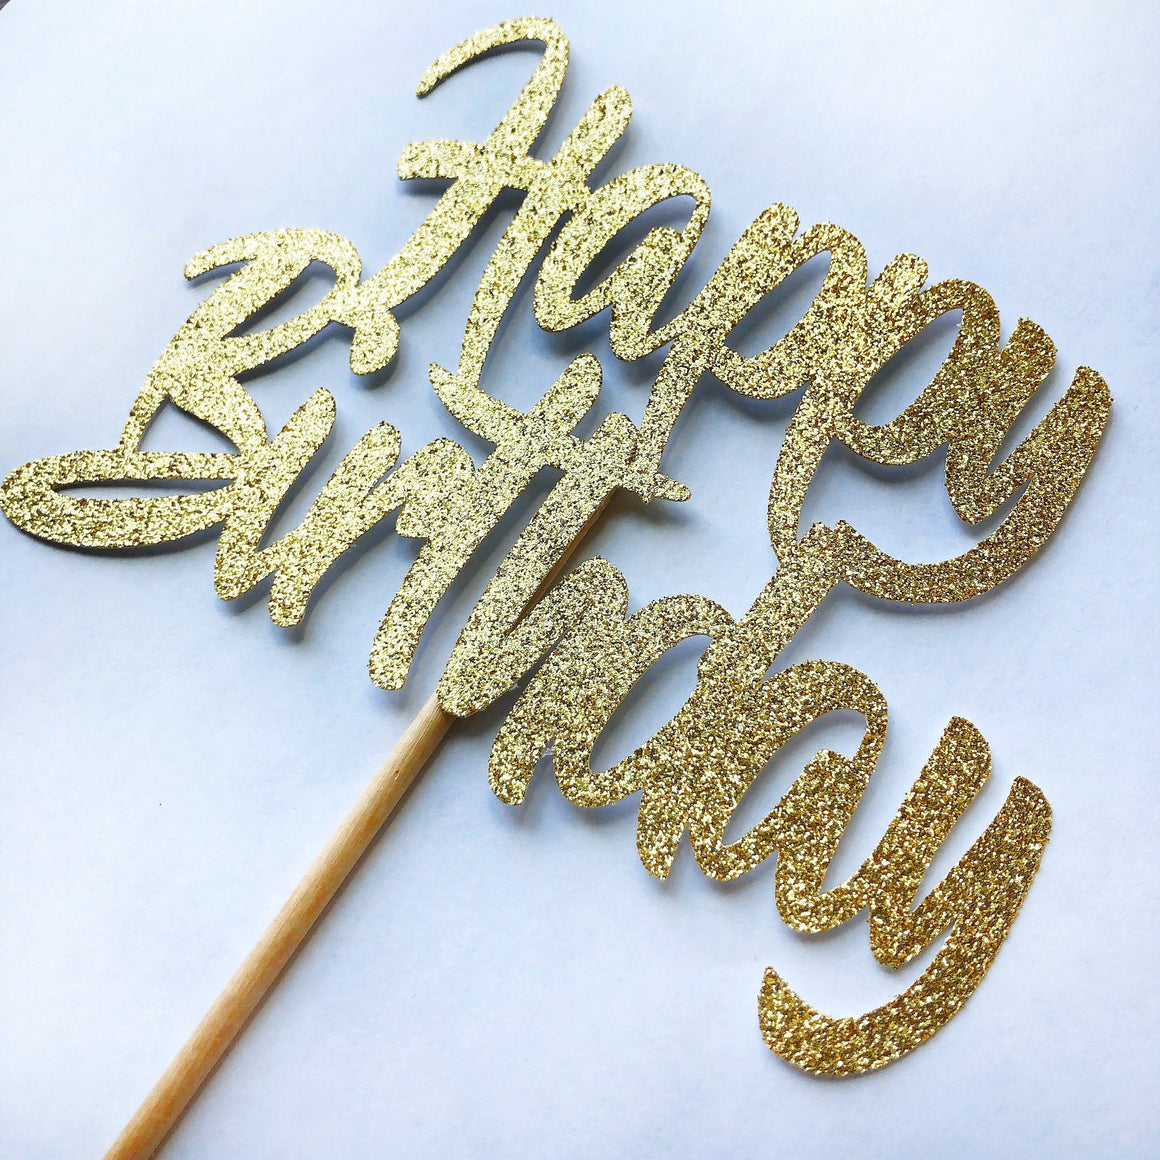 CAKE TOPPER - GLITTER HBD GOLD, Picks + Toppers, BON + CO - Bon + Co. Party Studio